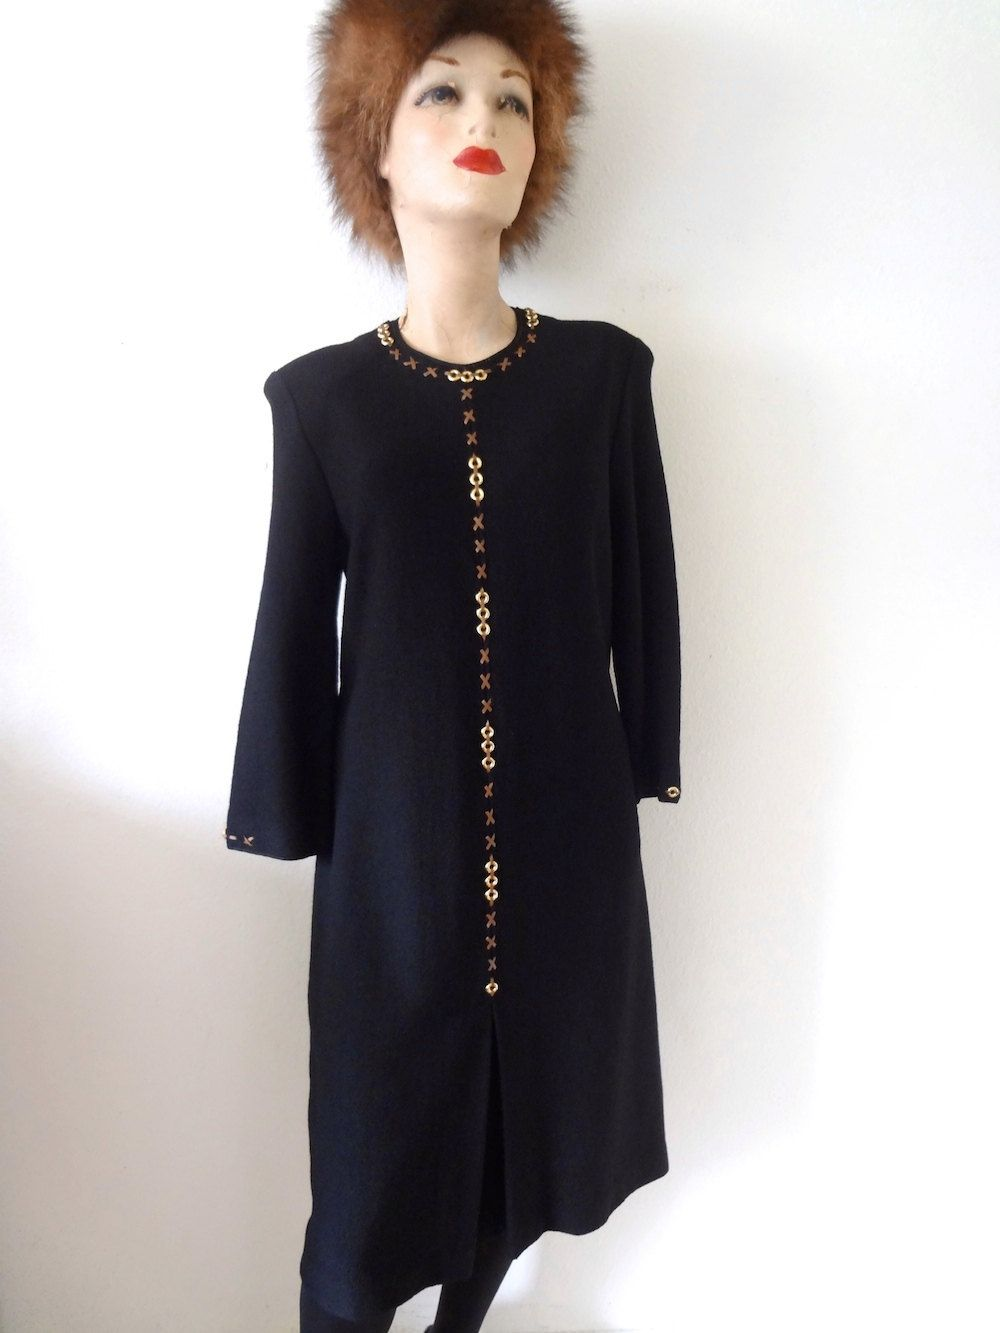 1960s Cotton Blouse - voile button back shirt with jabot ruffle ...